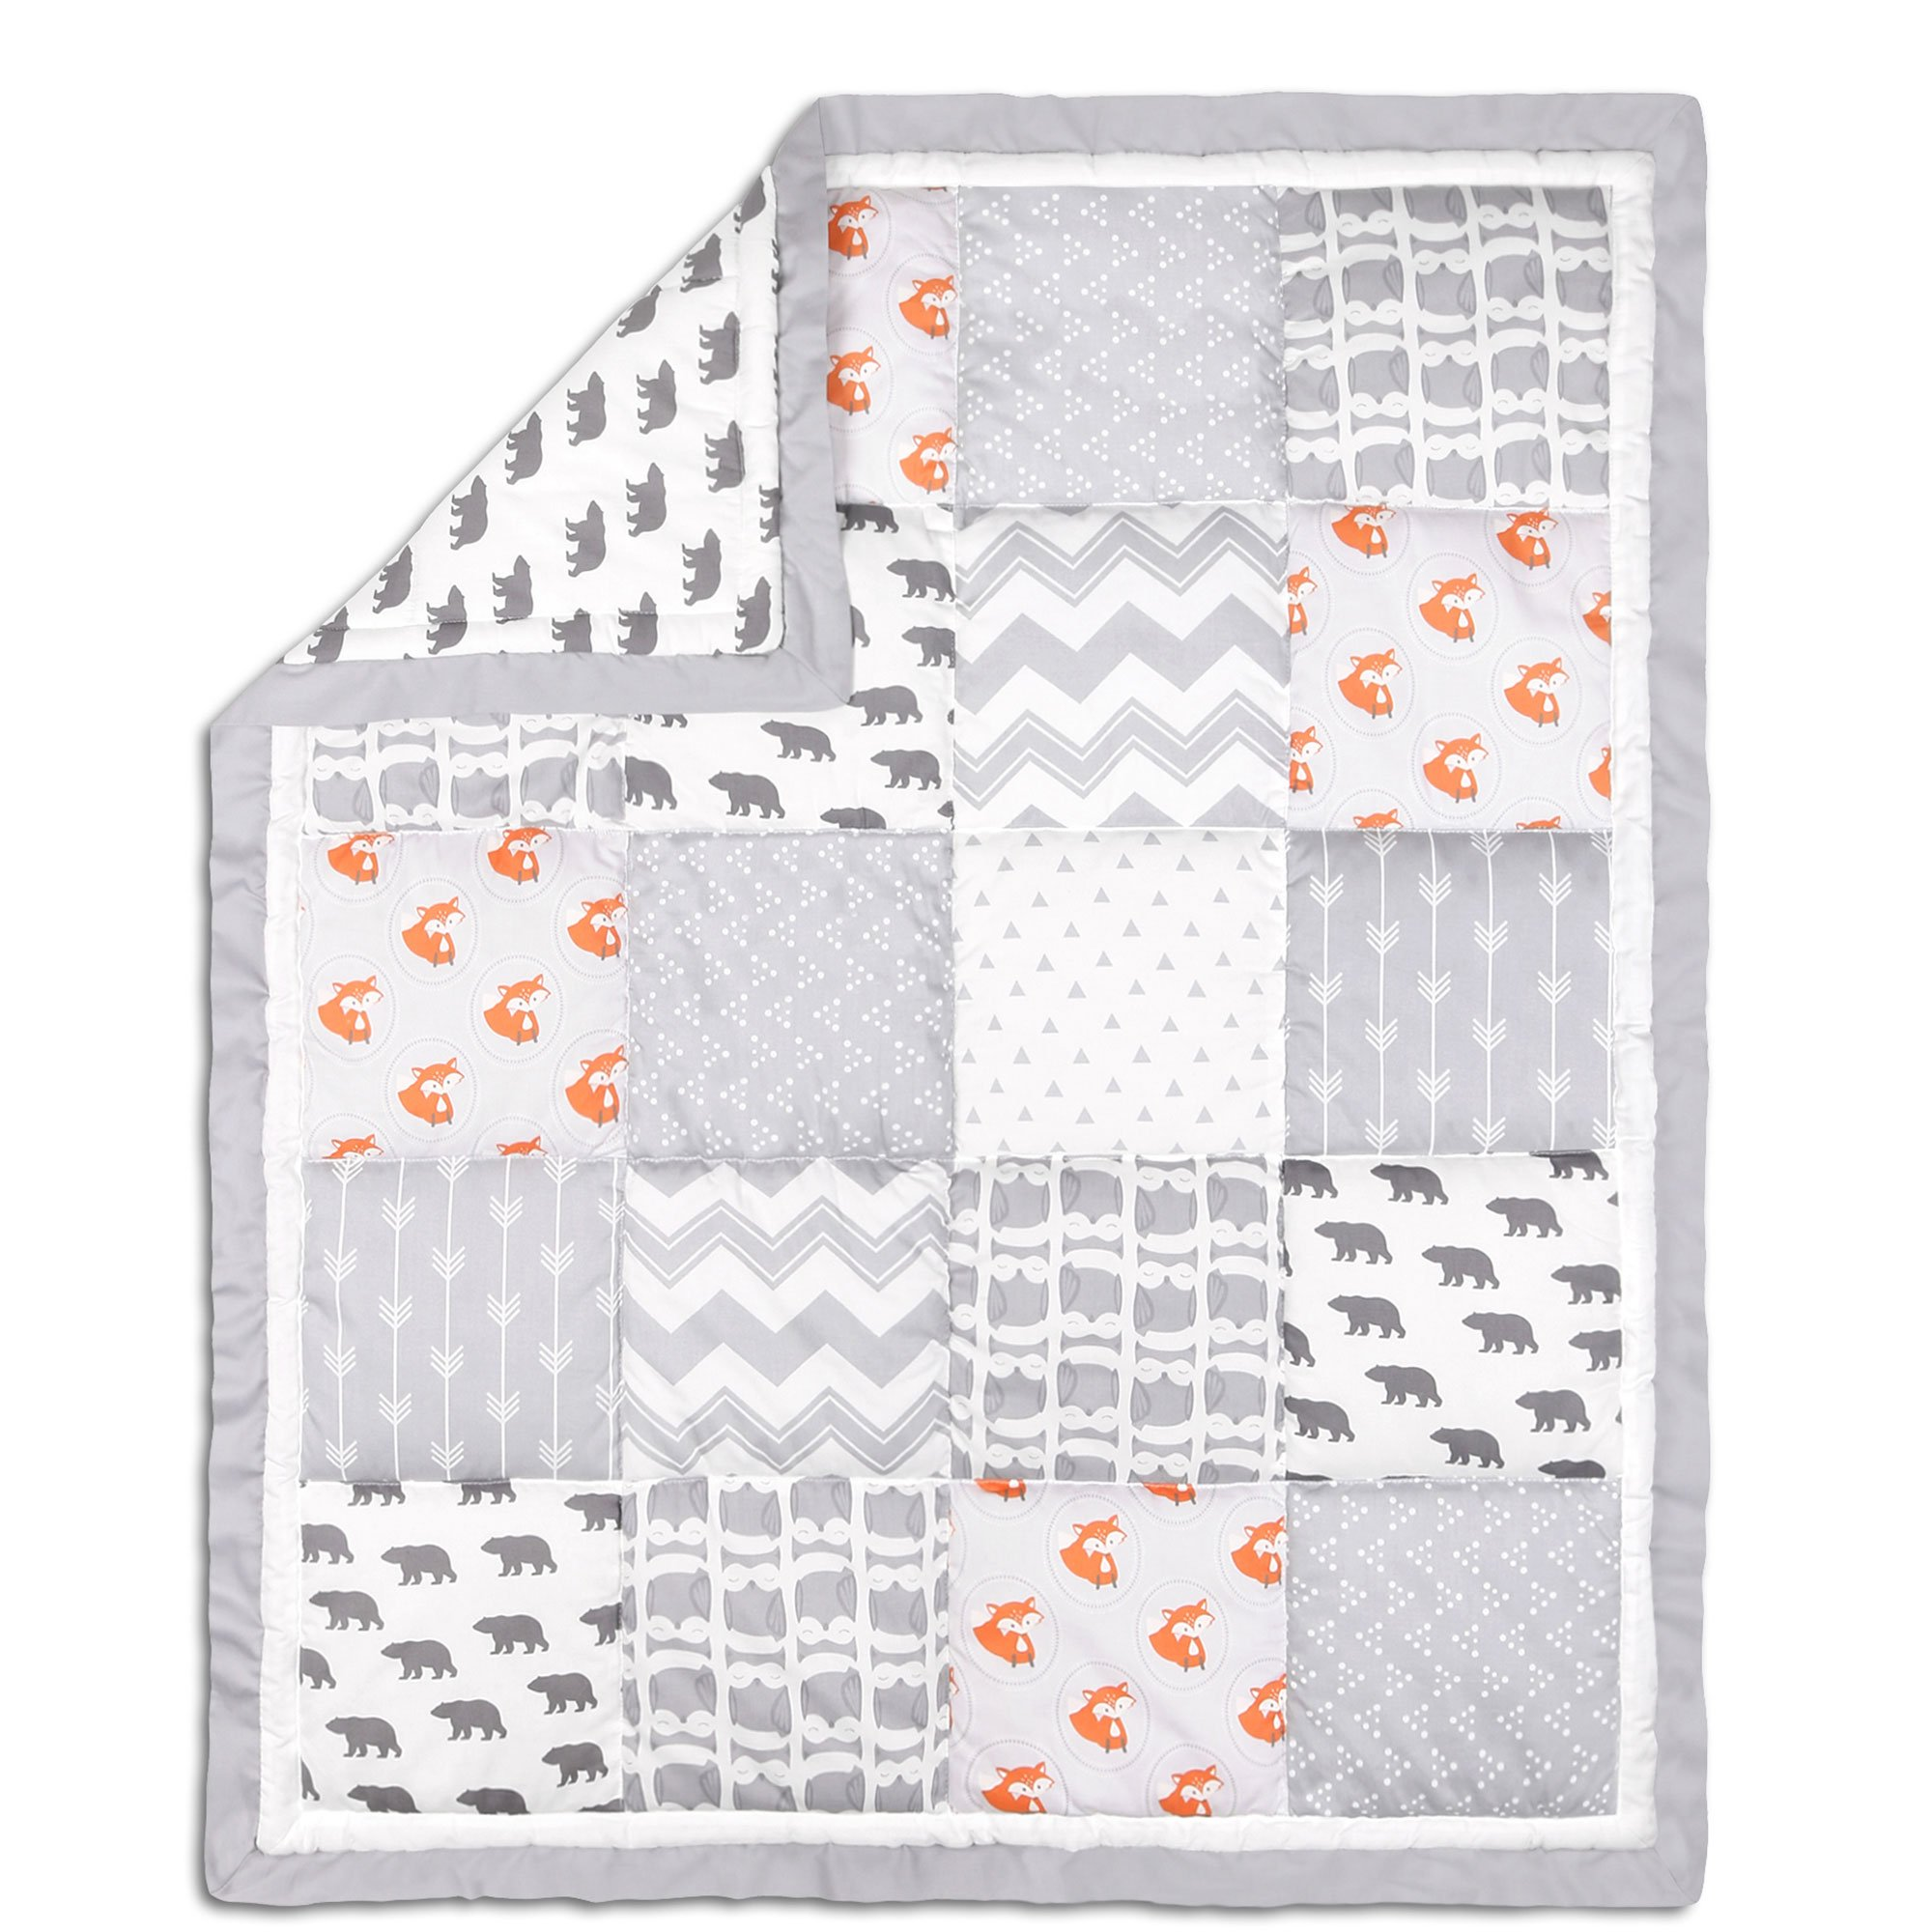 Grey and Orange Woodland Friends Patchwork Crib Quilt by The Peanut Shell by The Peanut Shell